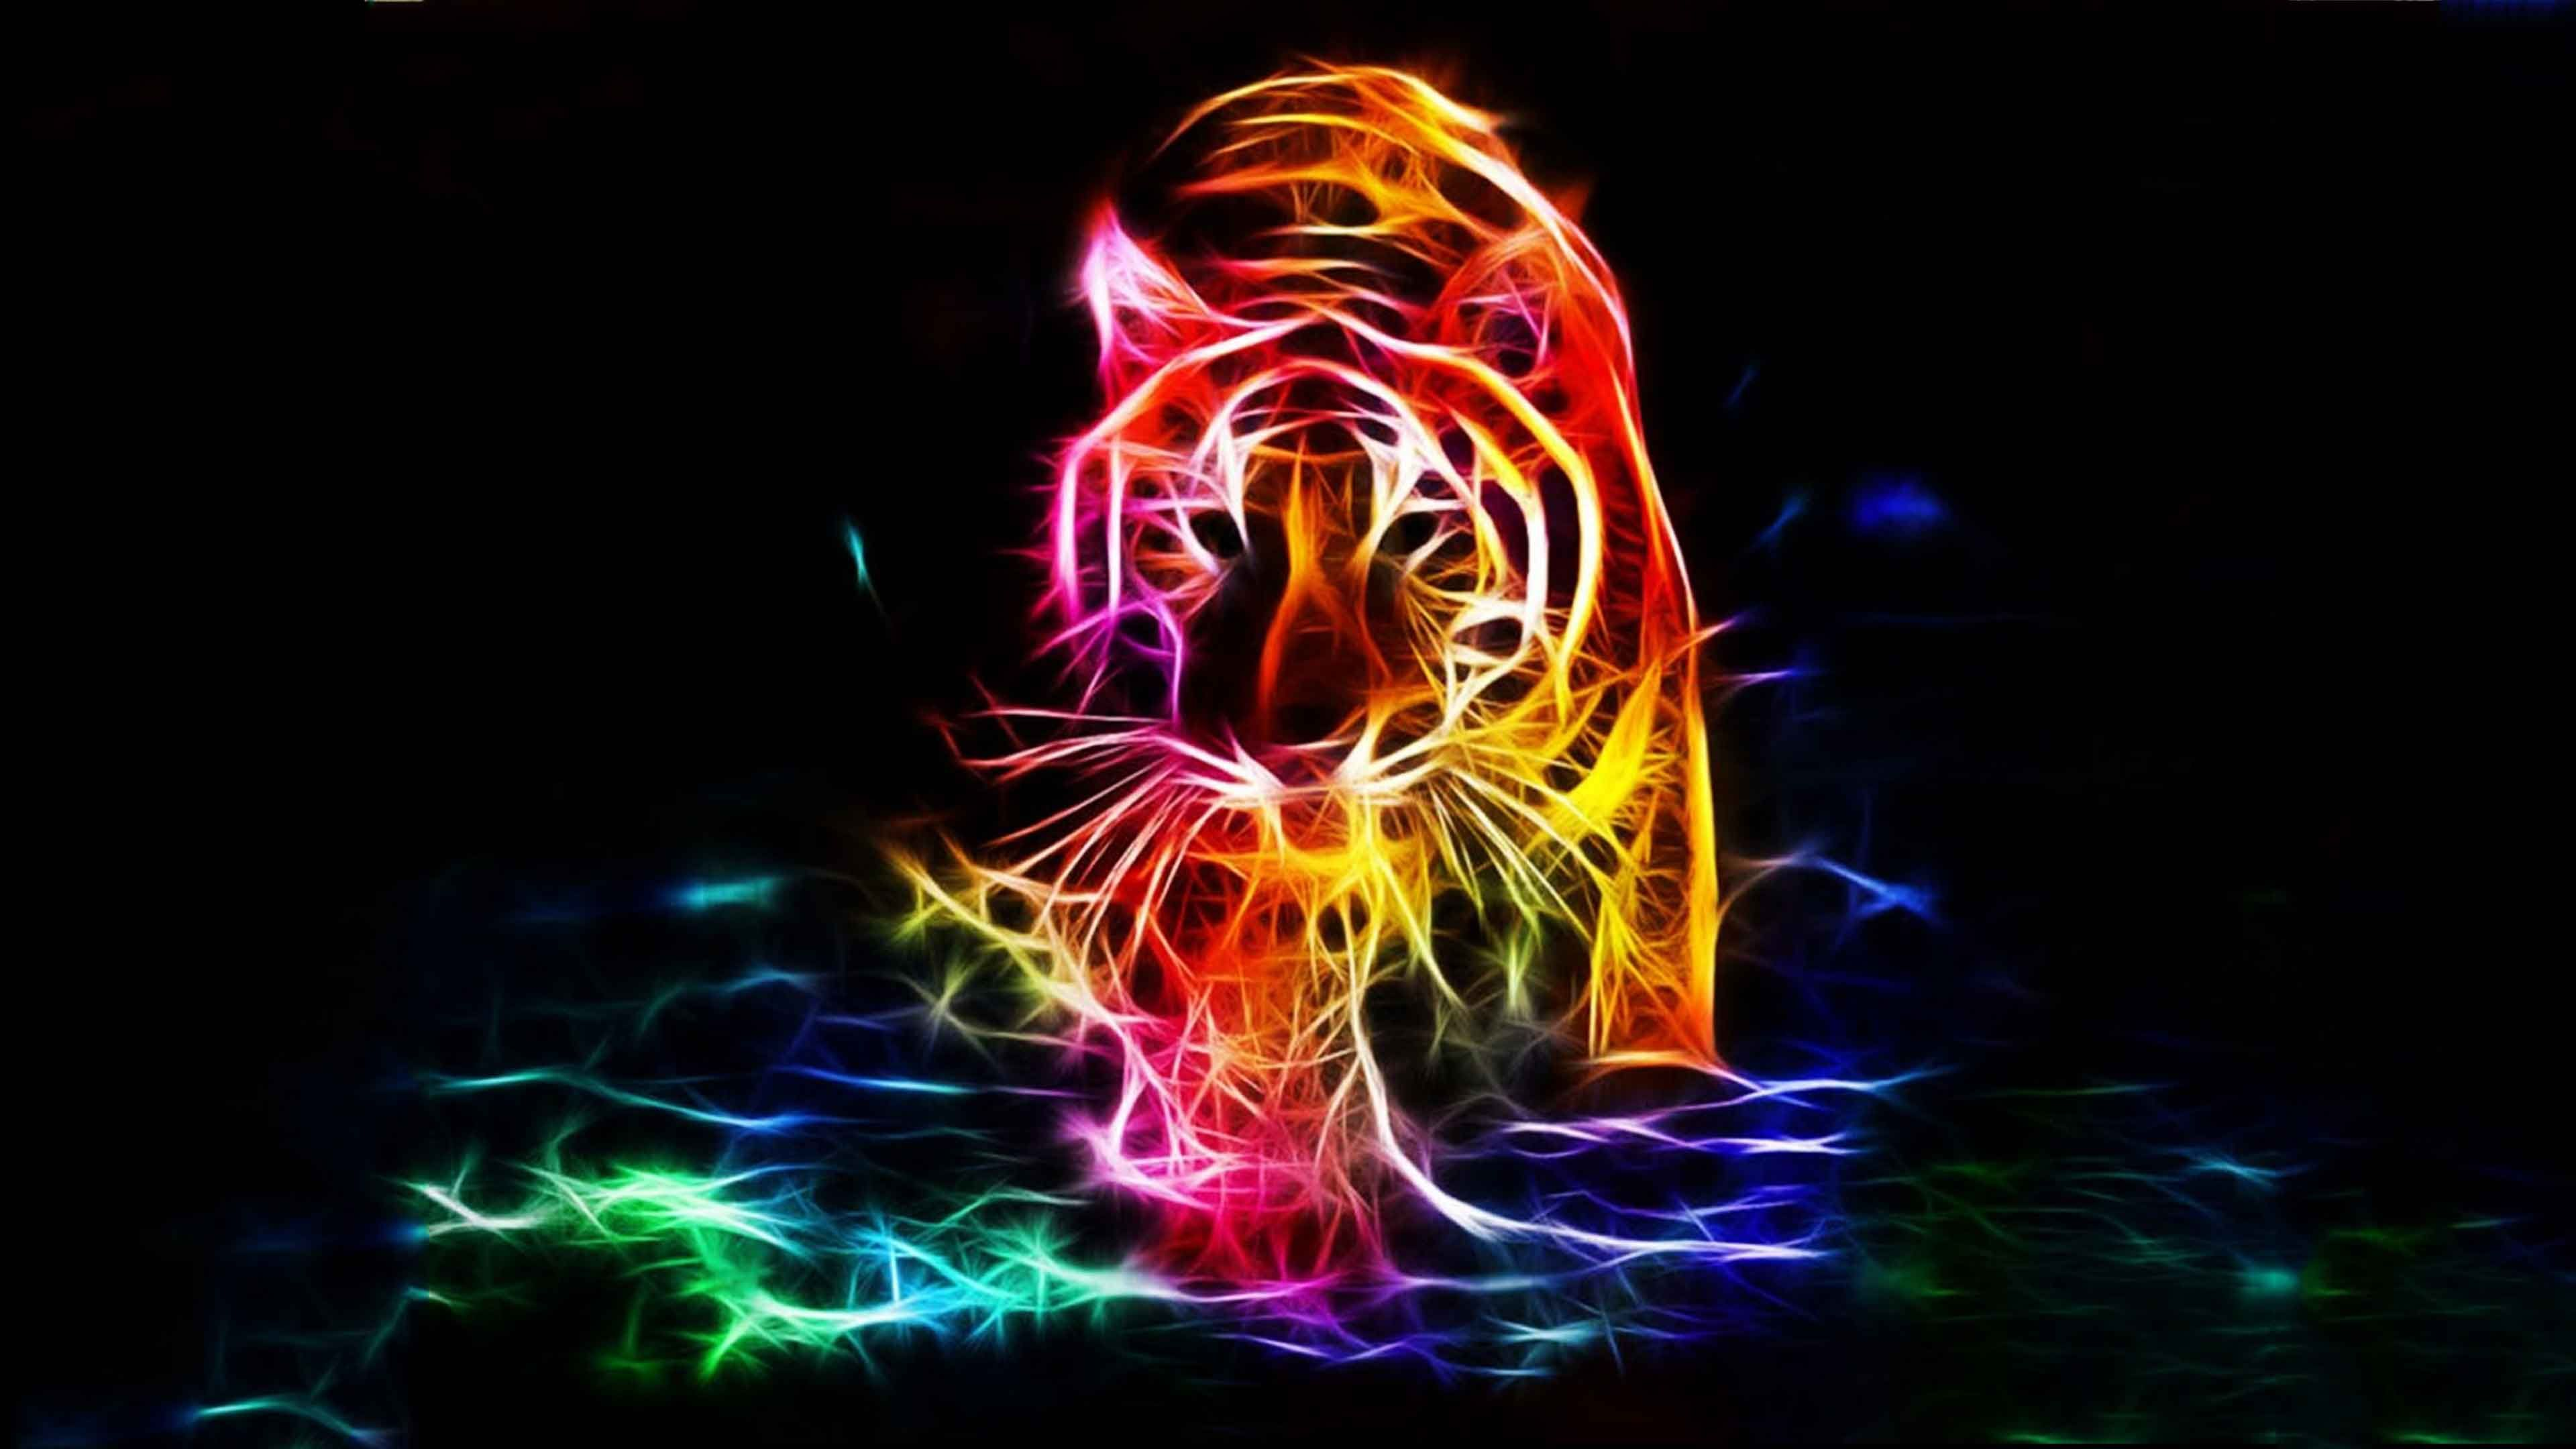 3d Tiger Images Tiger In Water Fractal Art Fractals